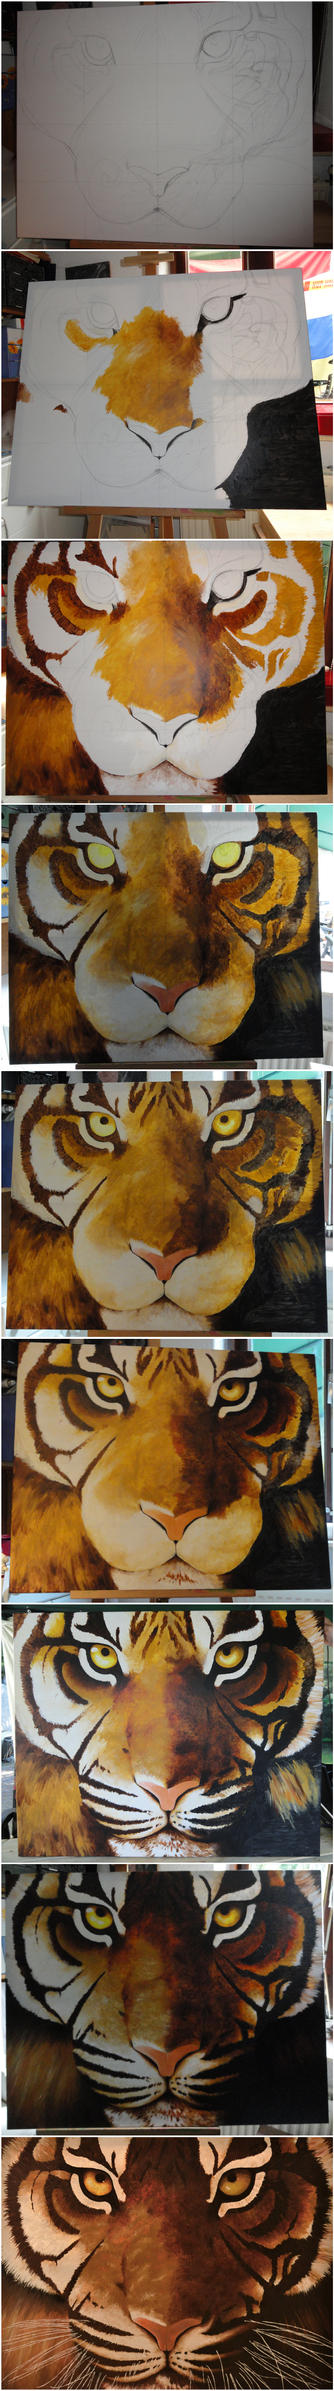 Tiger Progress by The-Other-Half-Of-Me